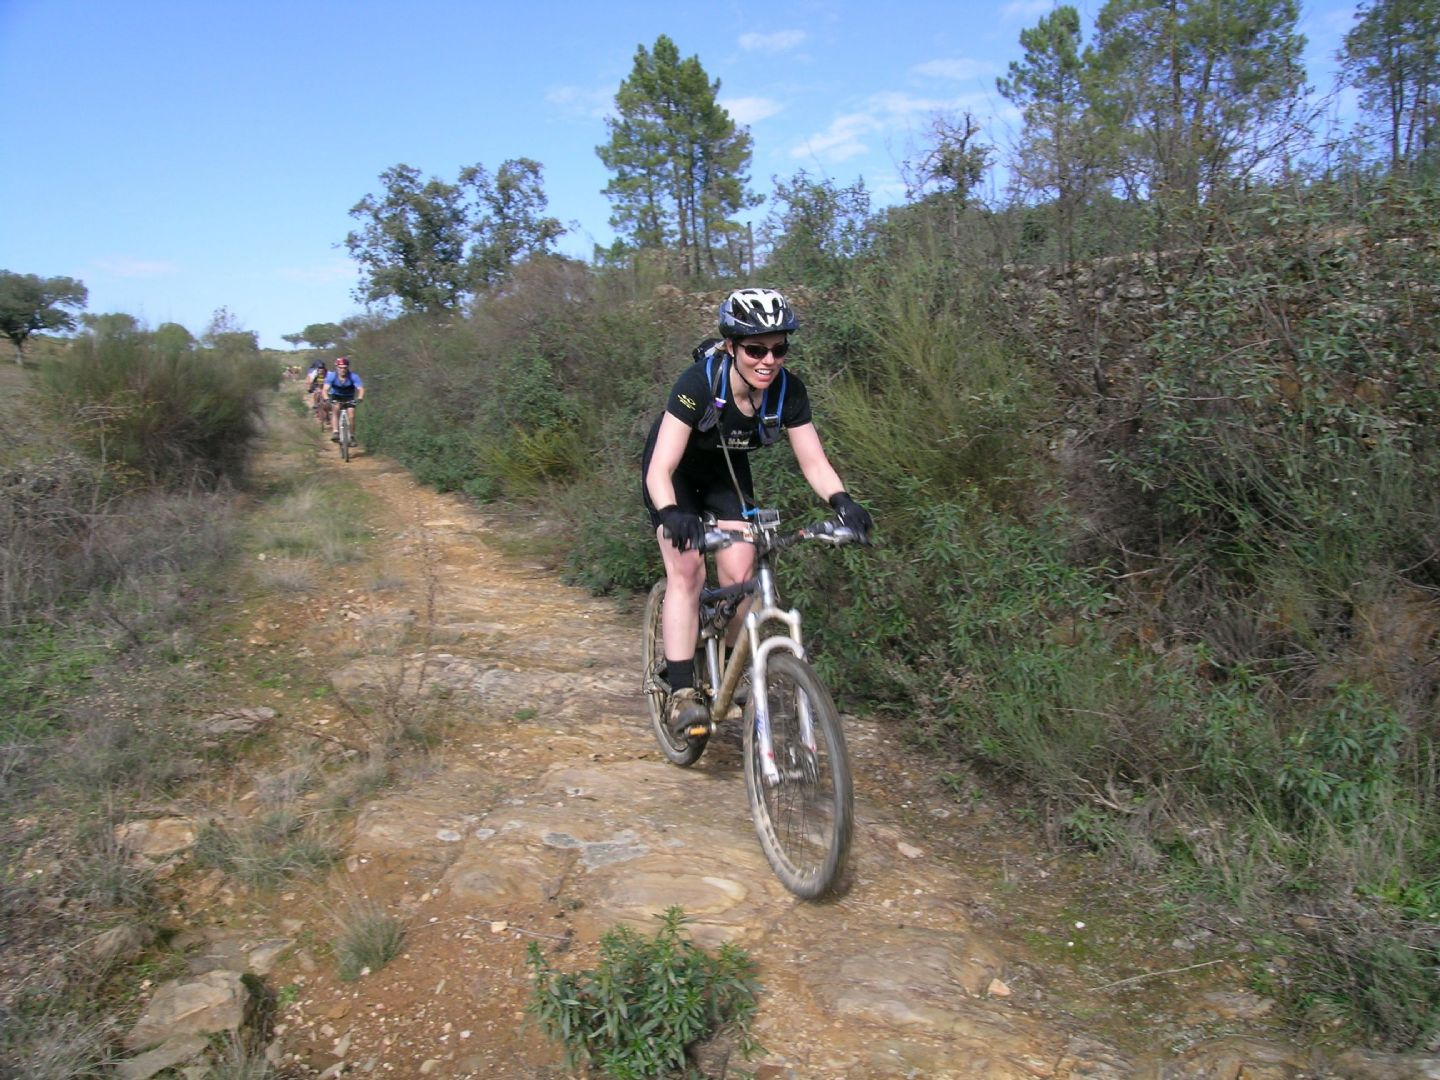 DSCN1417.JPG - Portugal - Roman Trails - Guided Mountain Bike Holiday - Mountain Biking